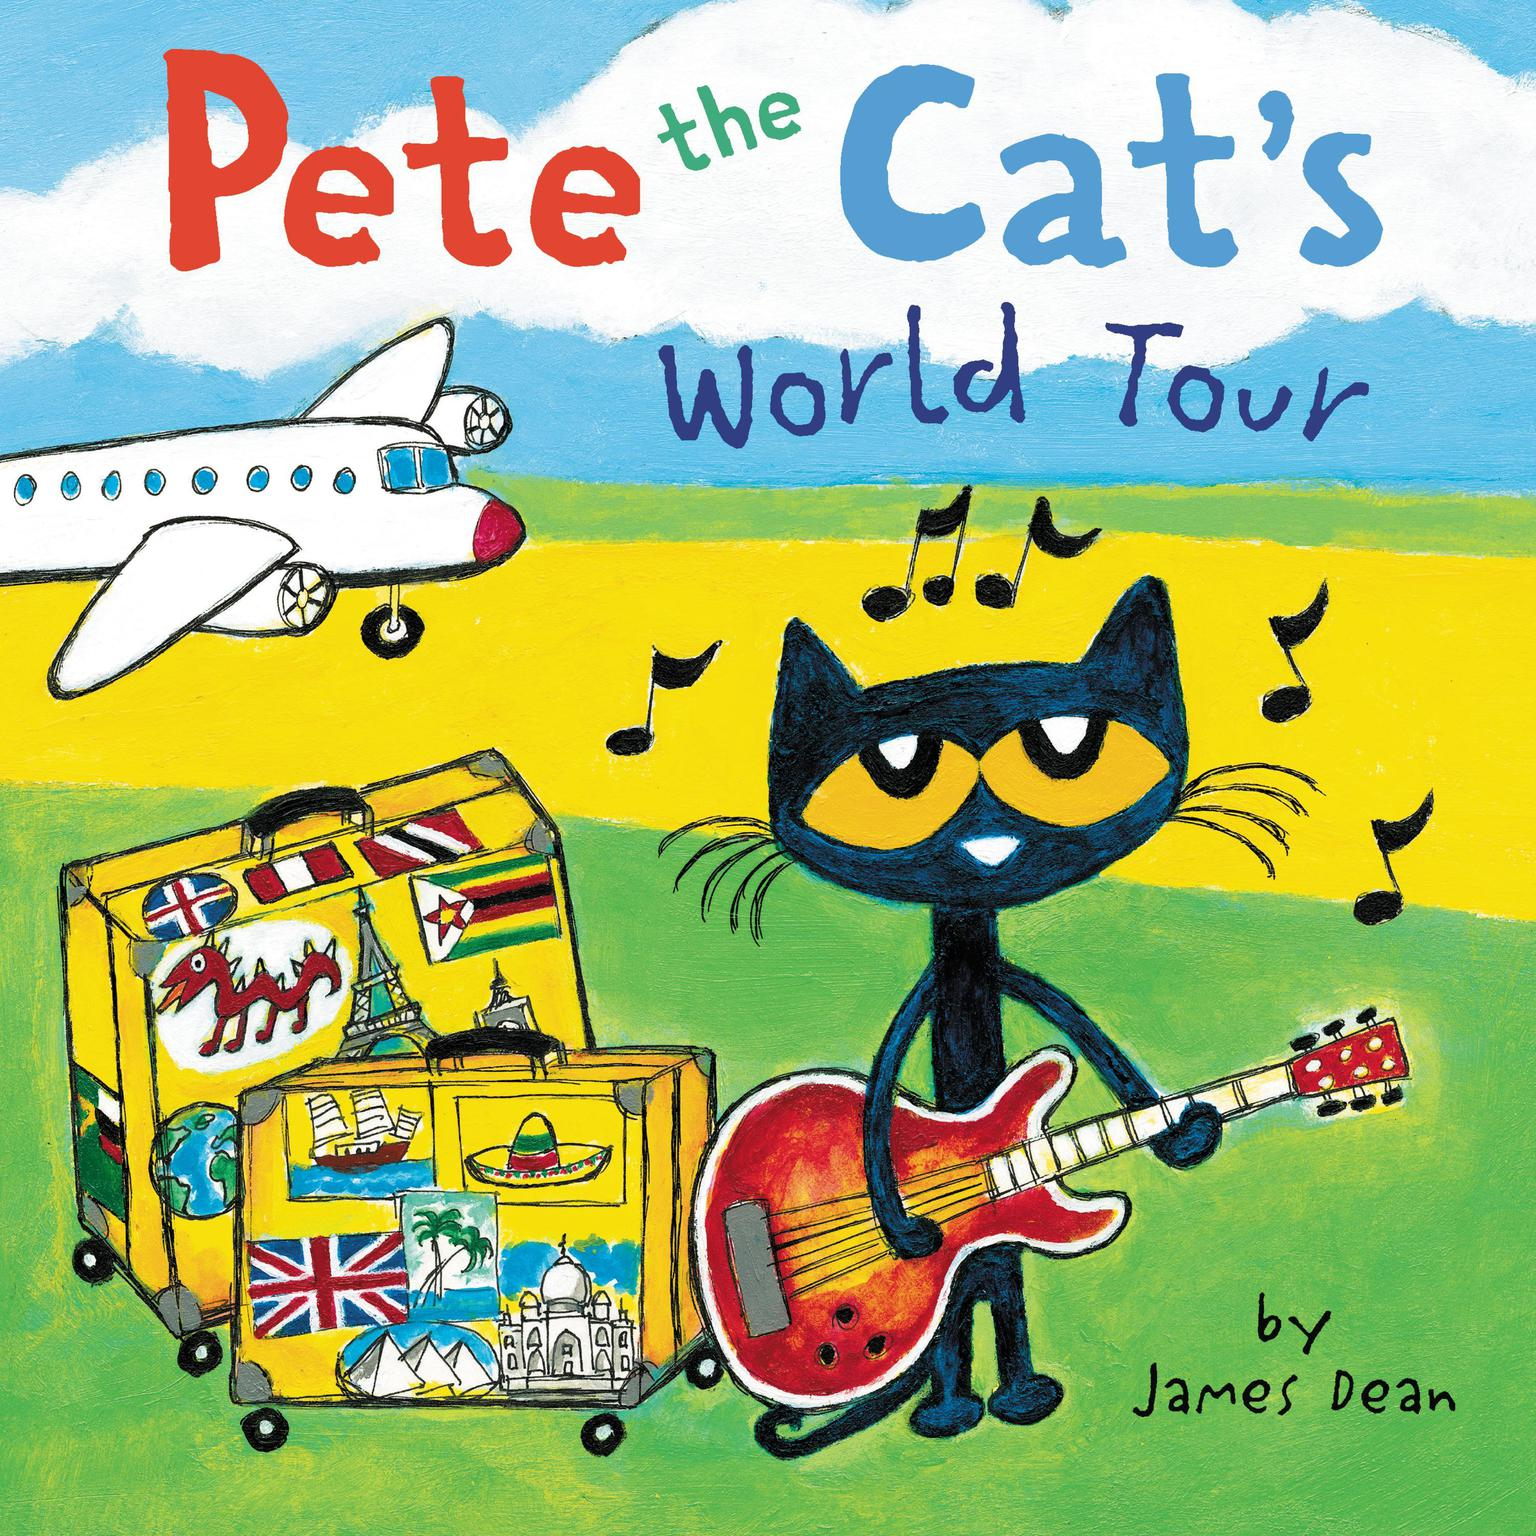 Pete the Cats World Tour Audiobook, by James Dean